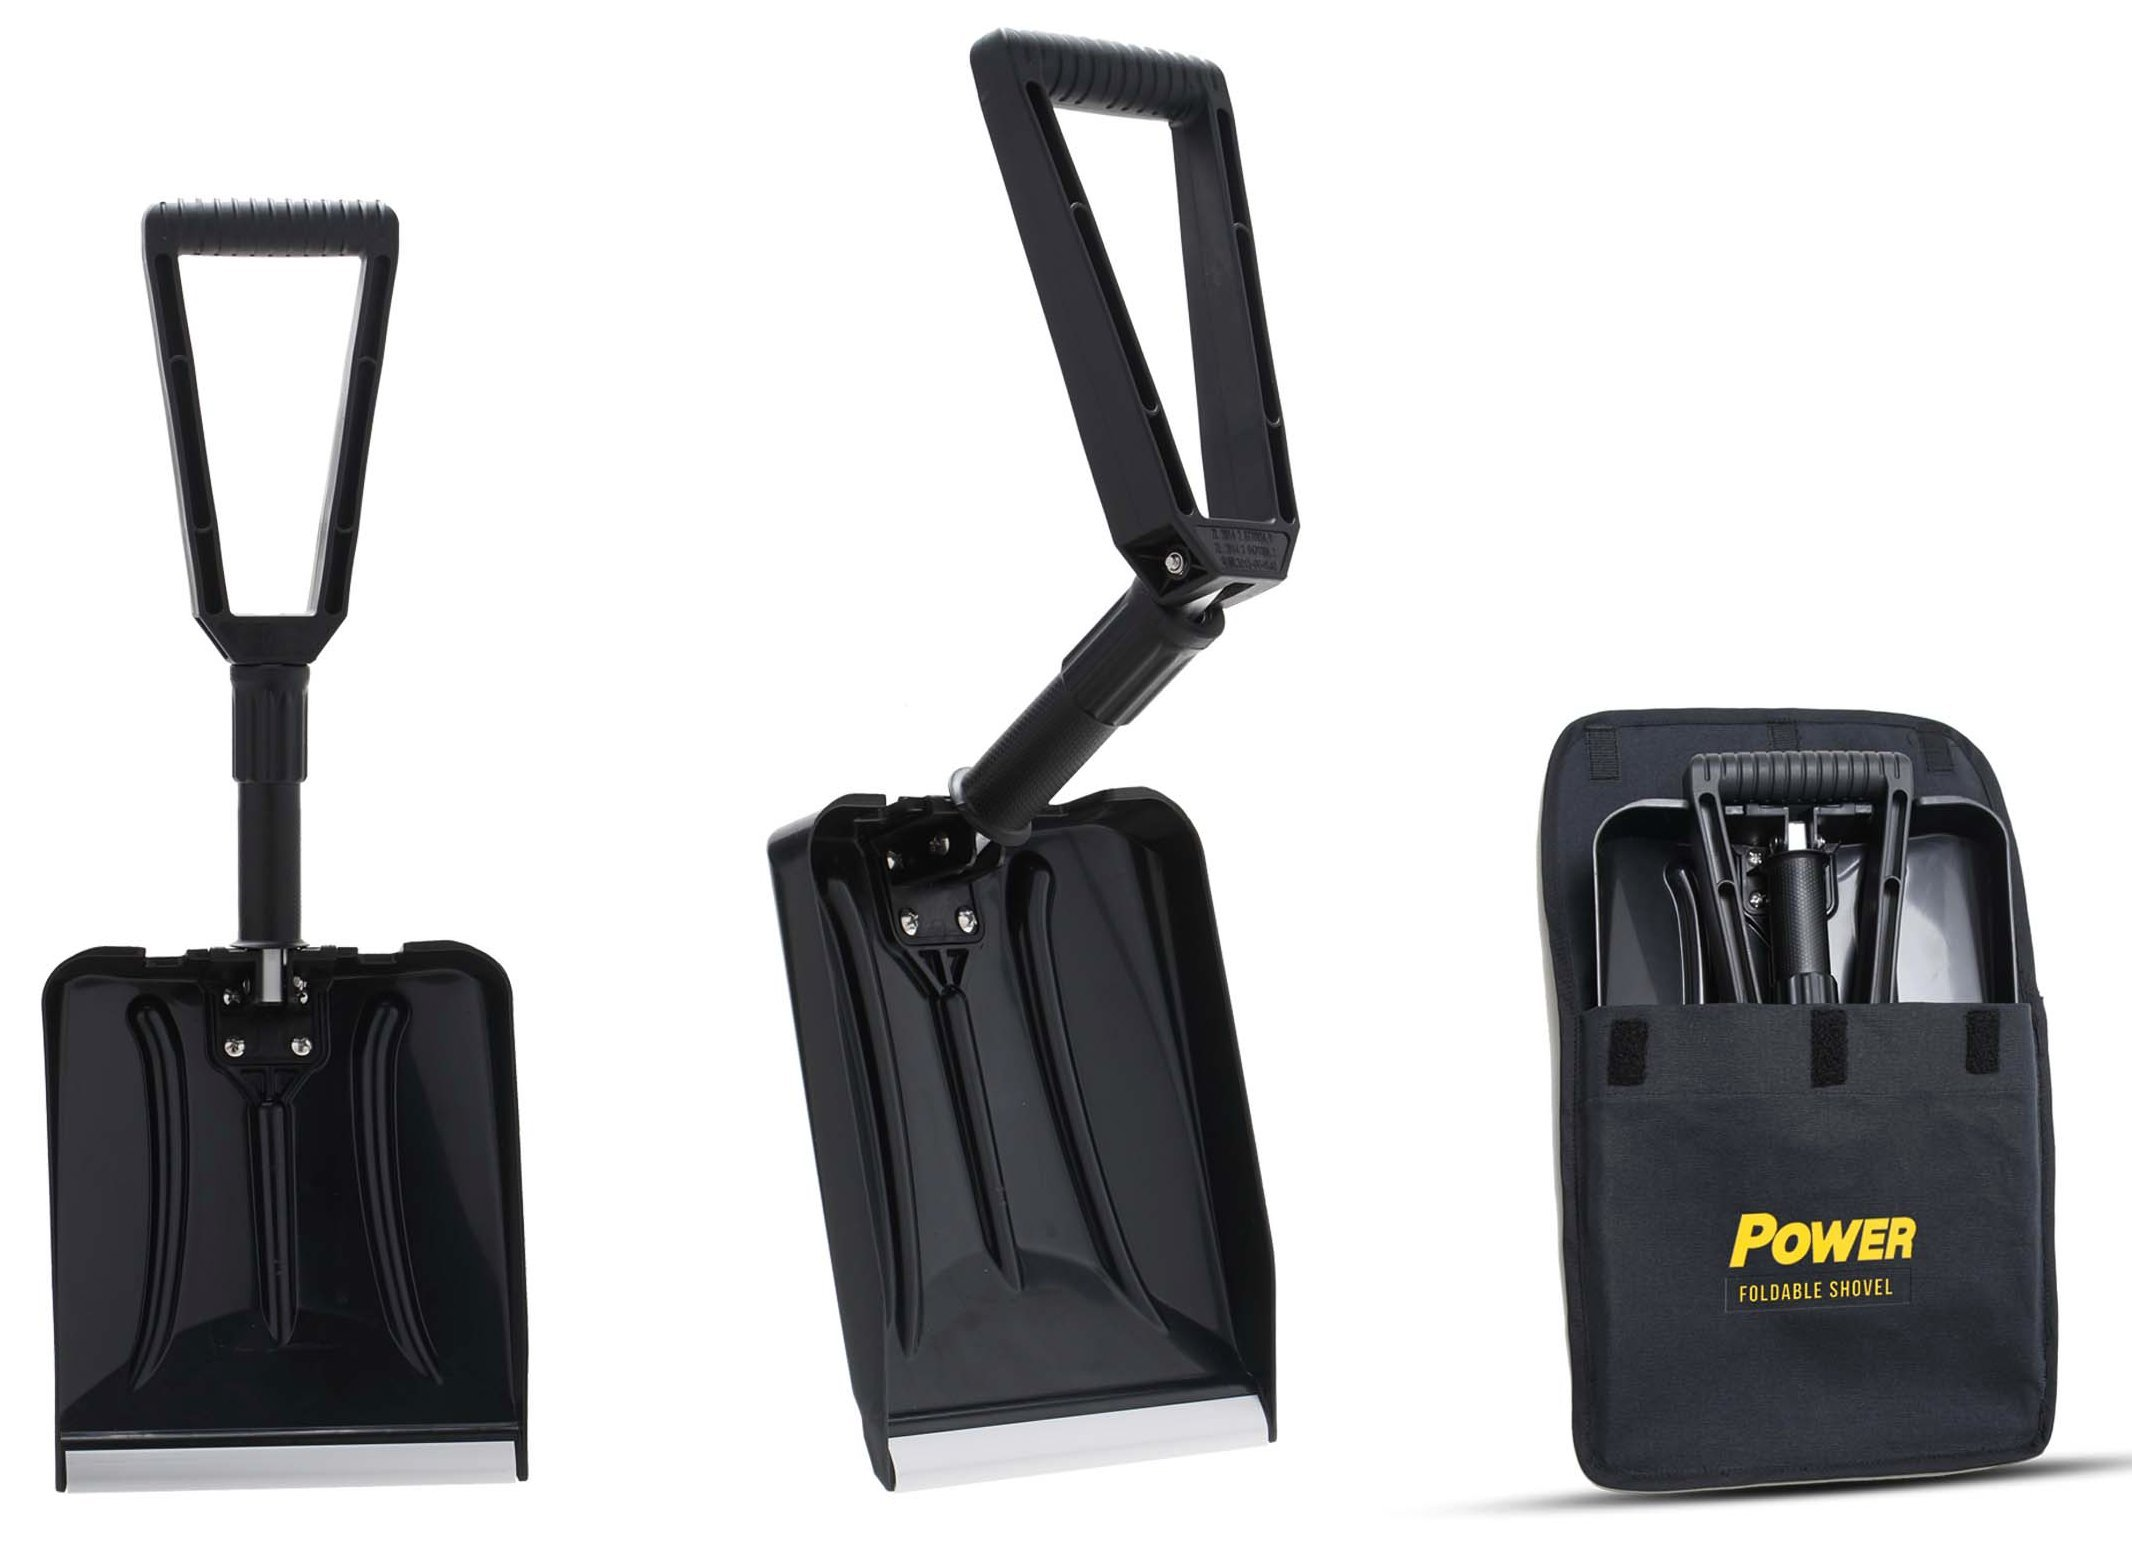 Power Foldable Shovel – Completely Collapsible Form 26'' Overall Length 12.5'' Compact Length (Black Color)